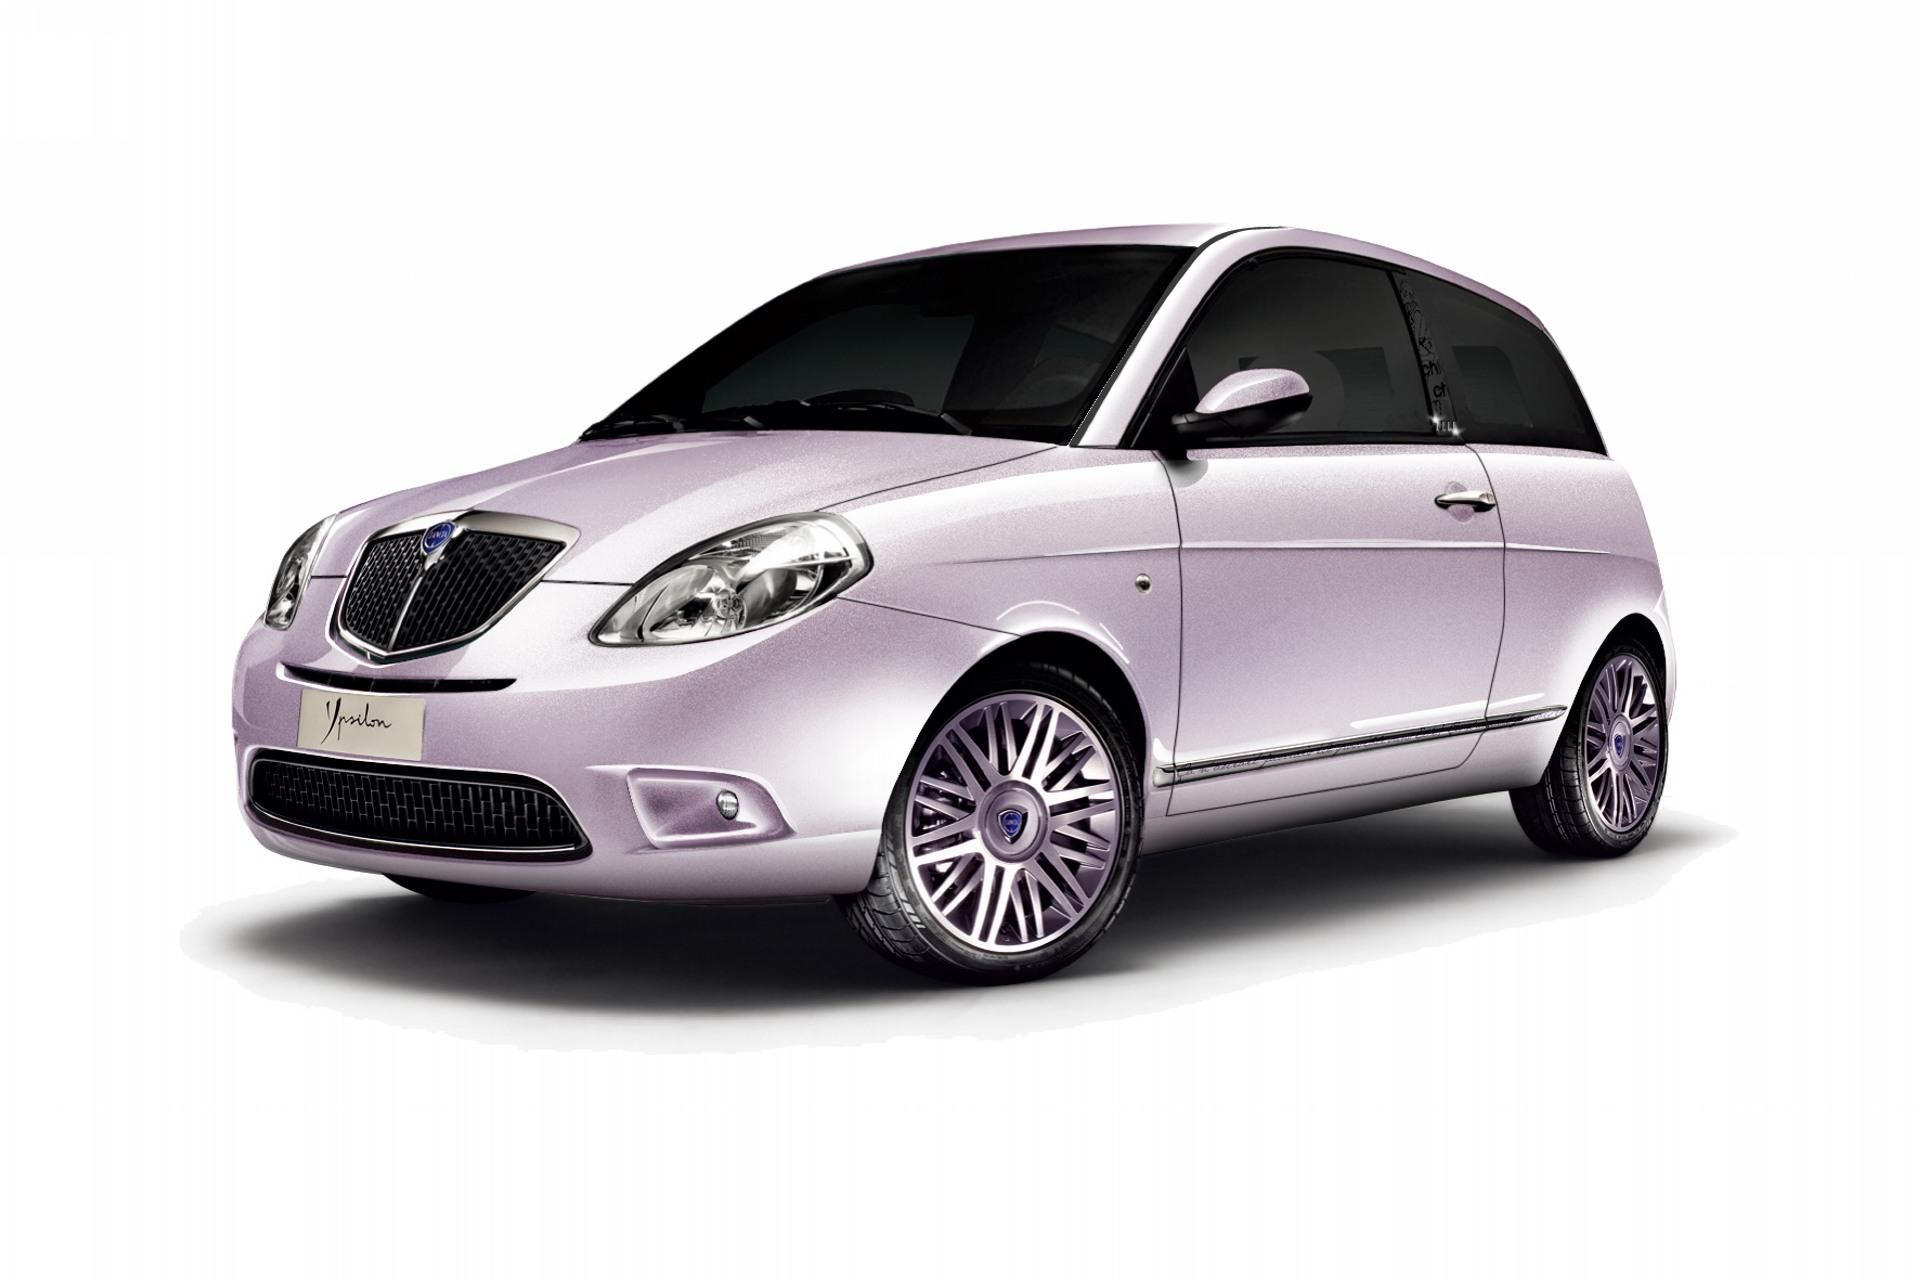 2010 lancia ypsilon elle news and information - Lancia y diva 2010 ...